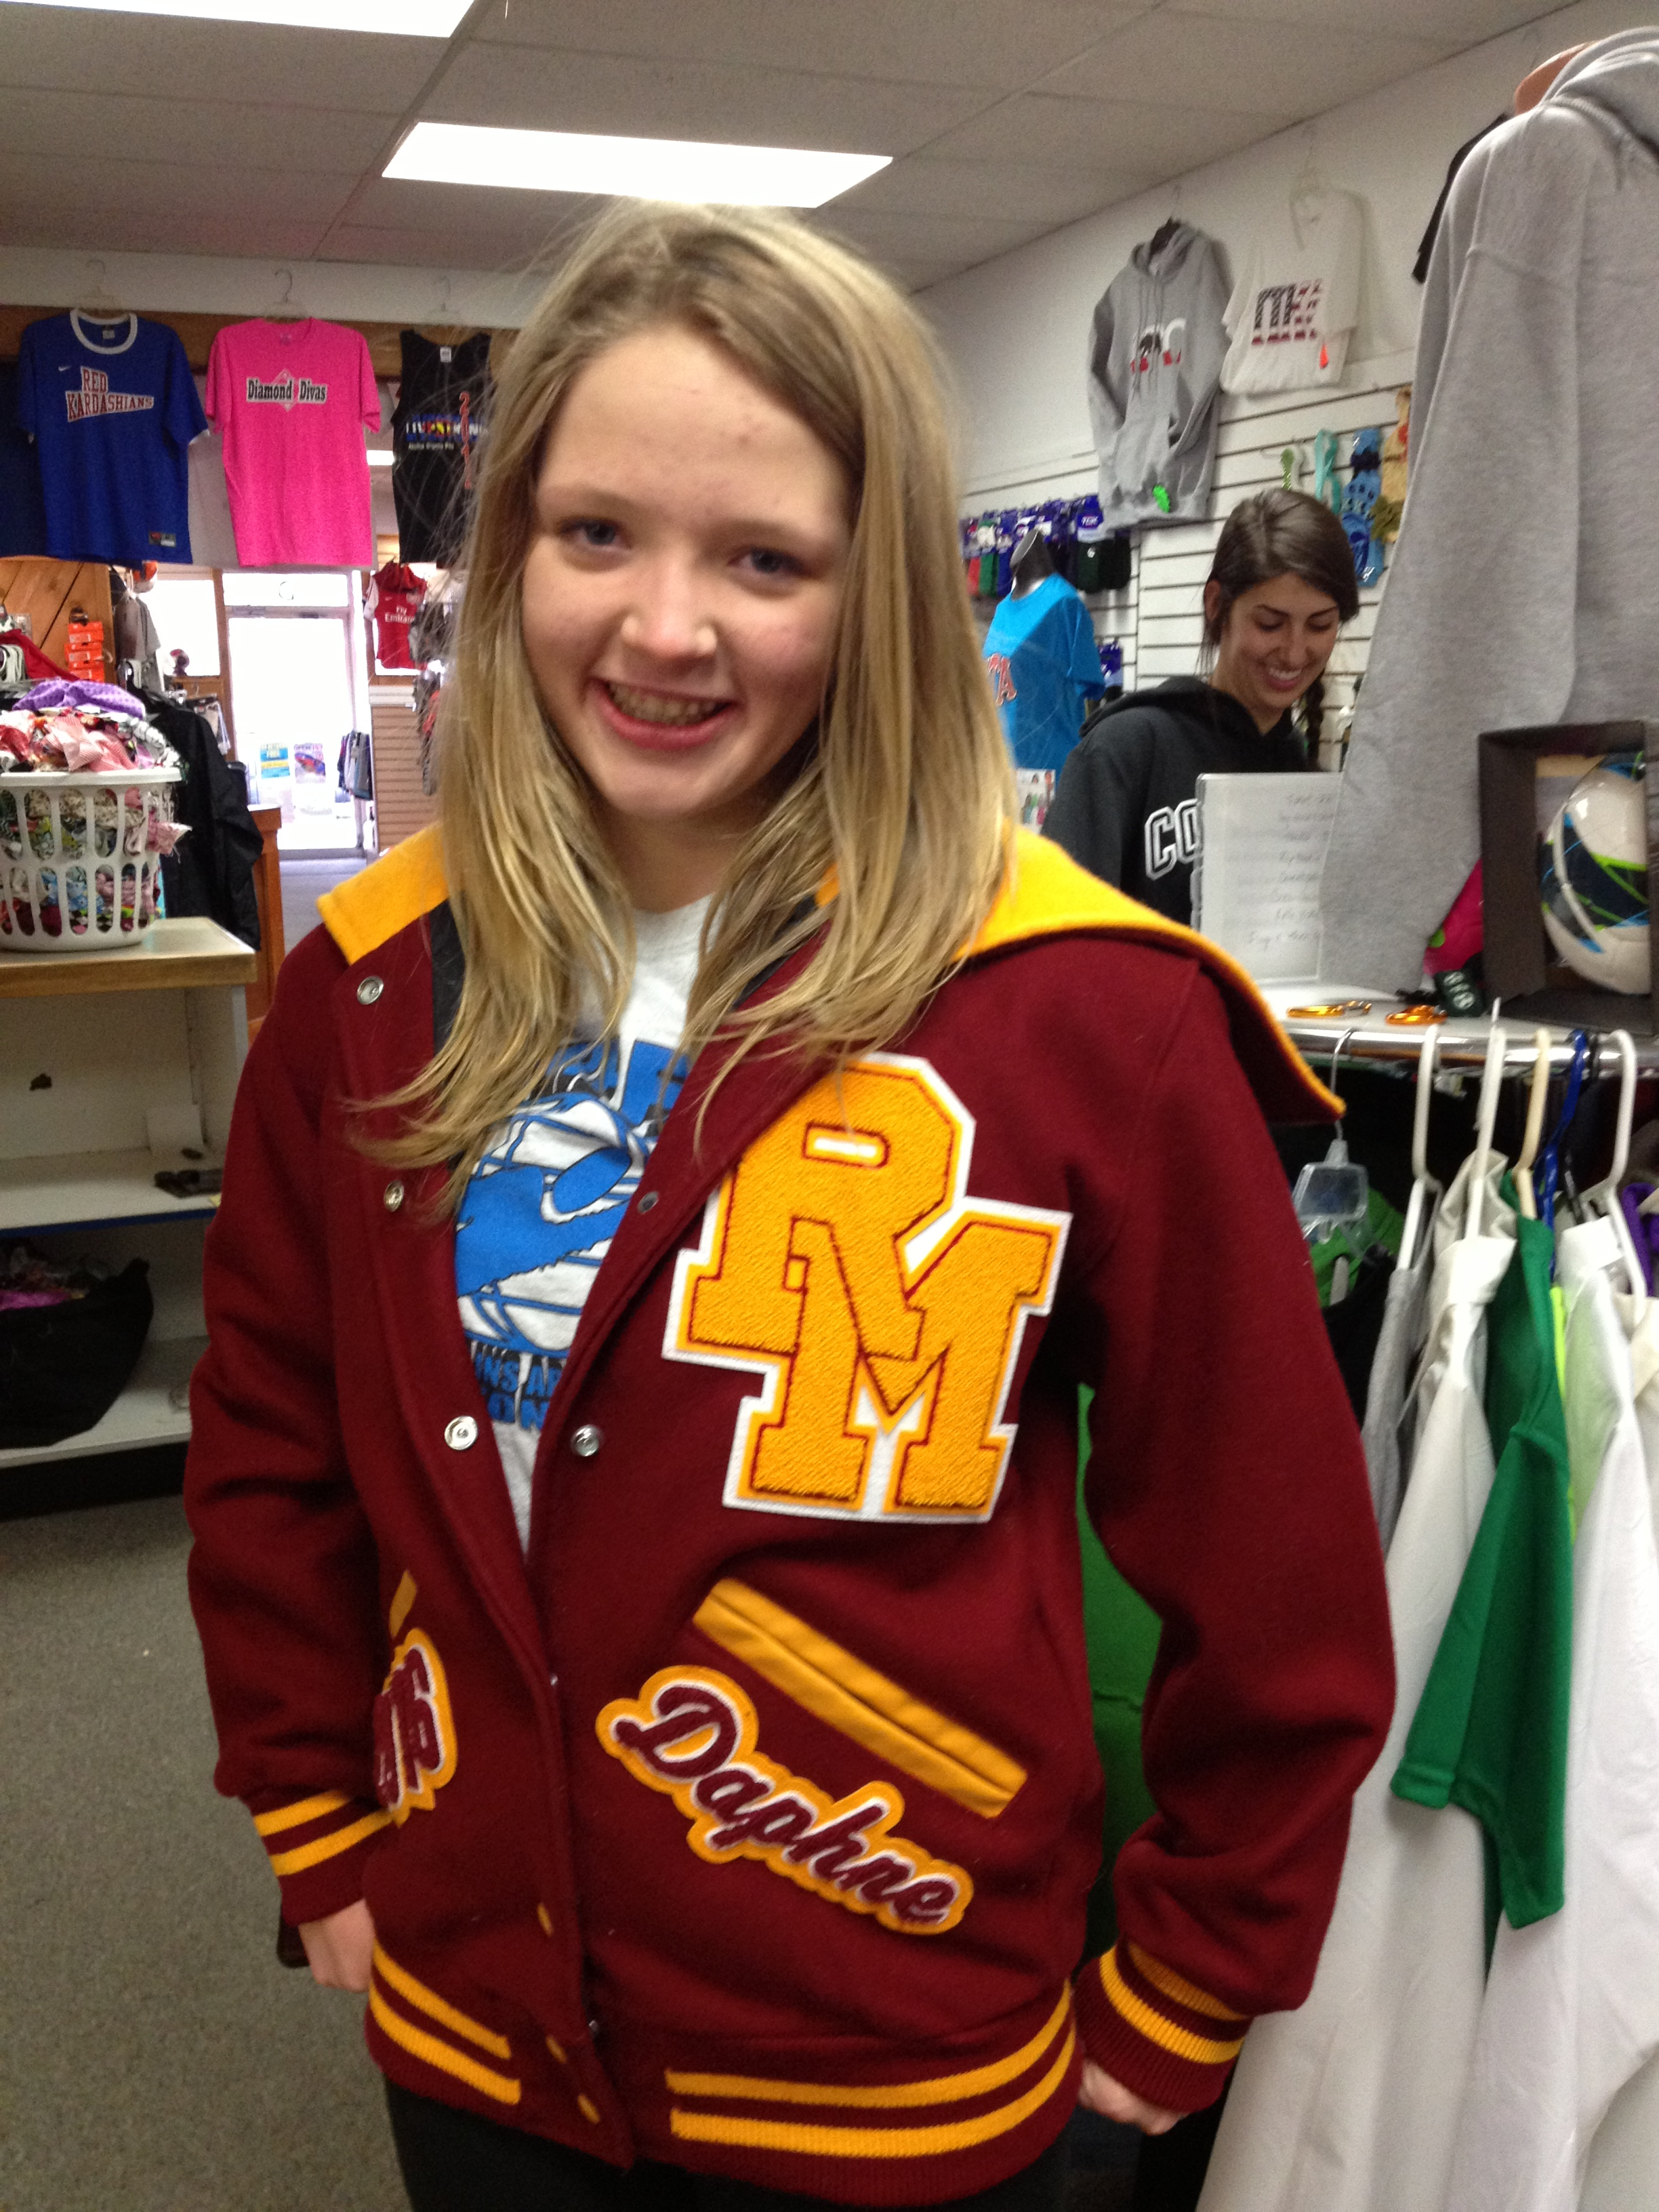 letterman jackets sport about fort collins With loveland high school letter jackets